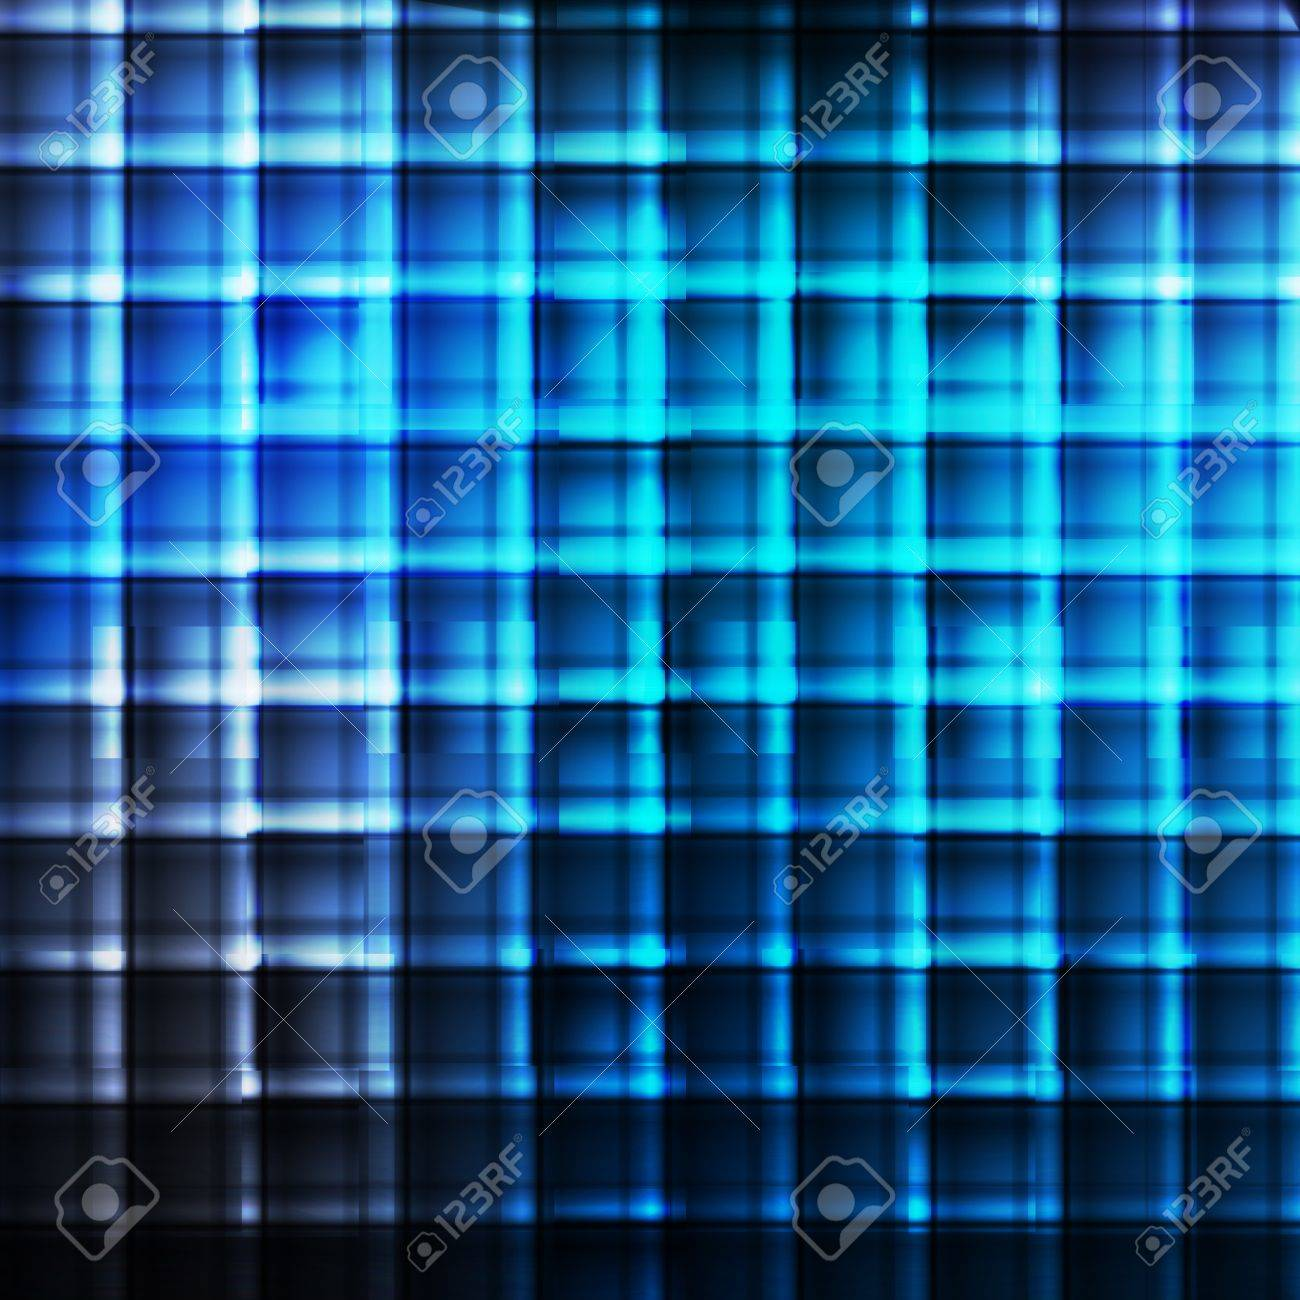 Blue abstract vector background concept with neon lines Stock Vector - 17408032